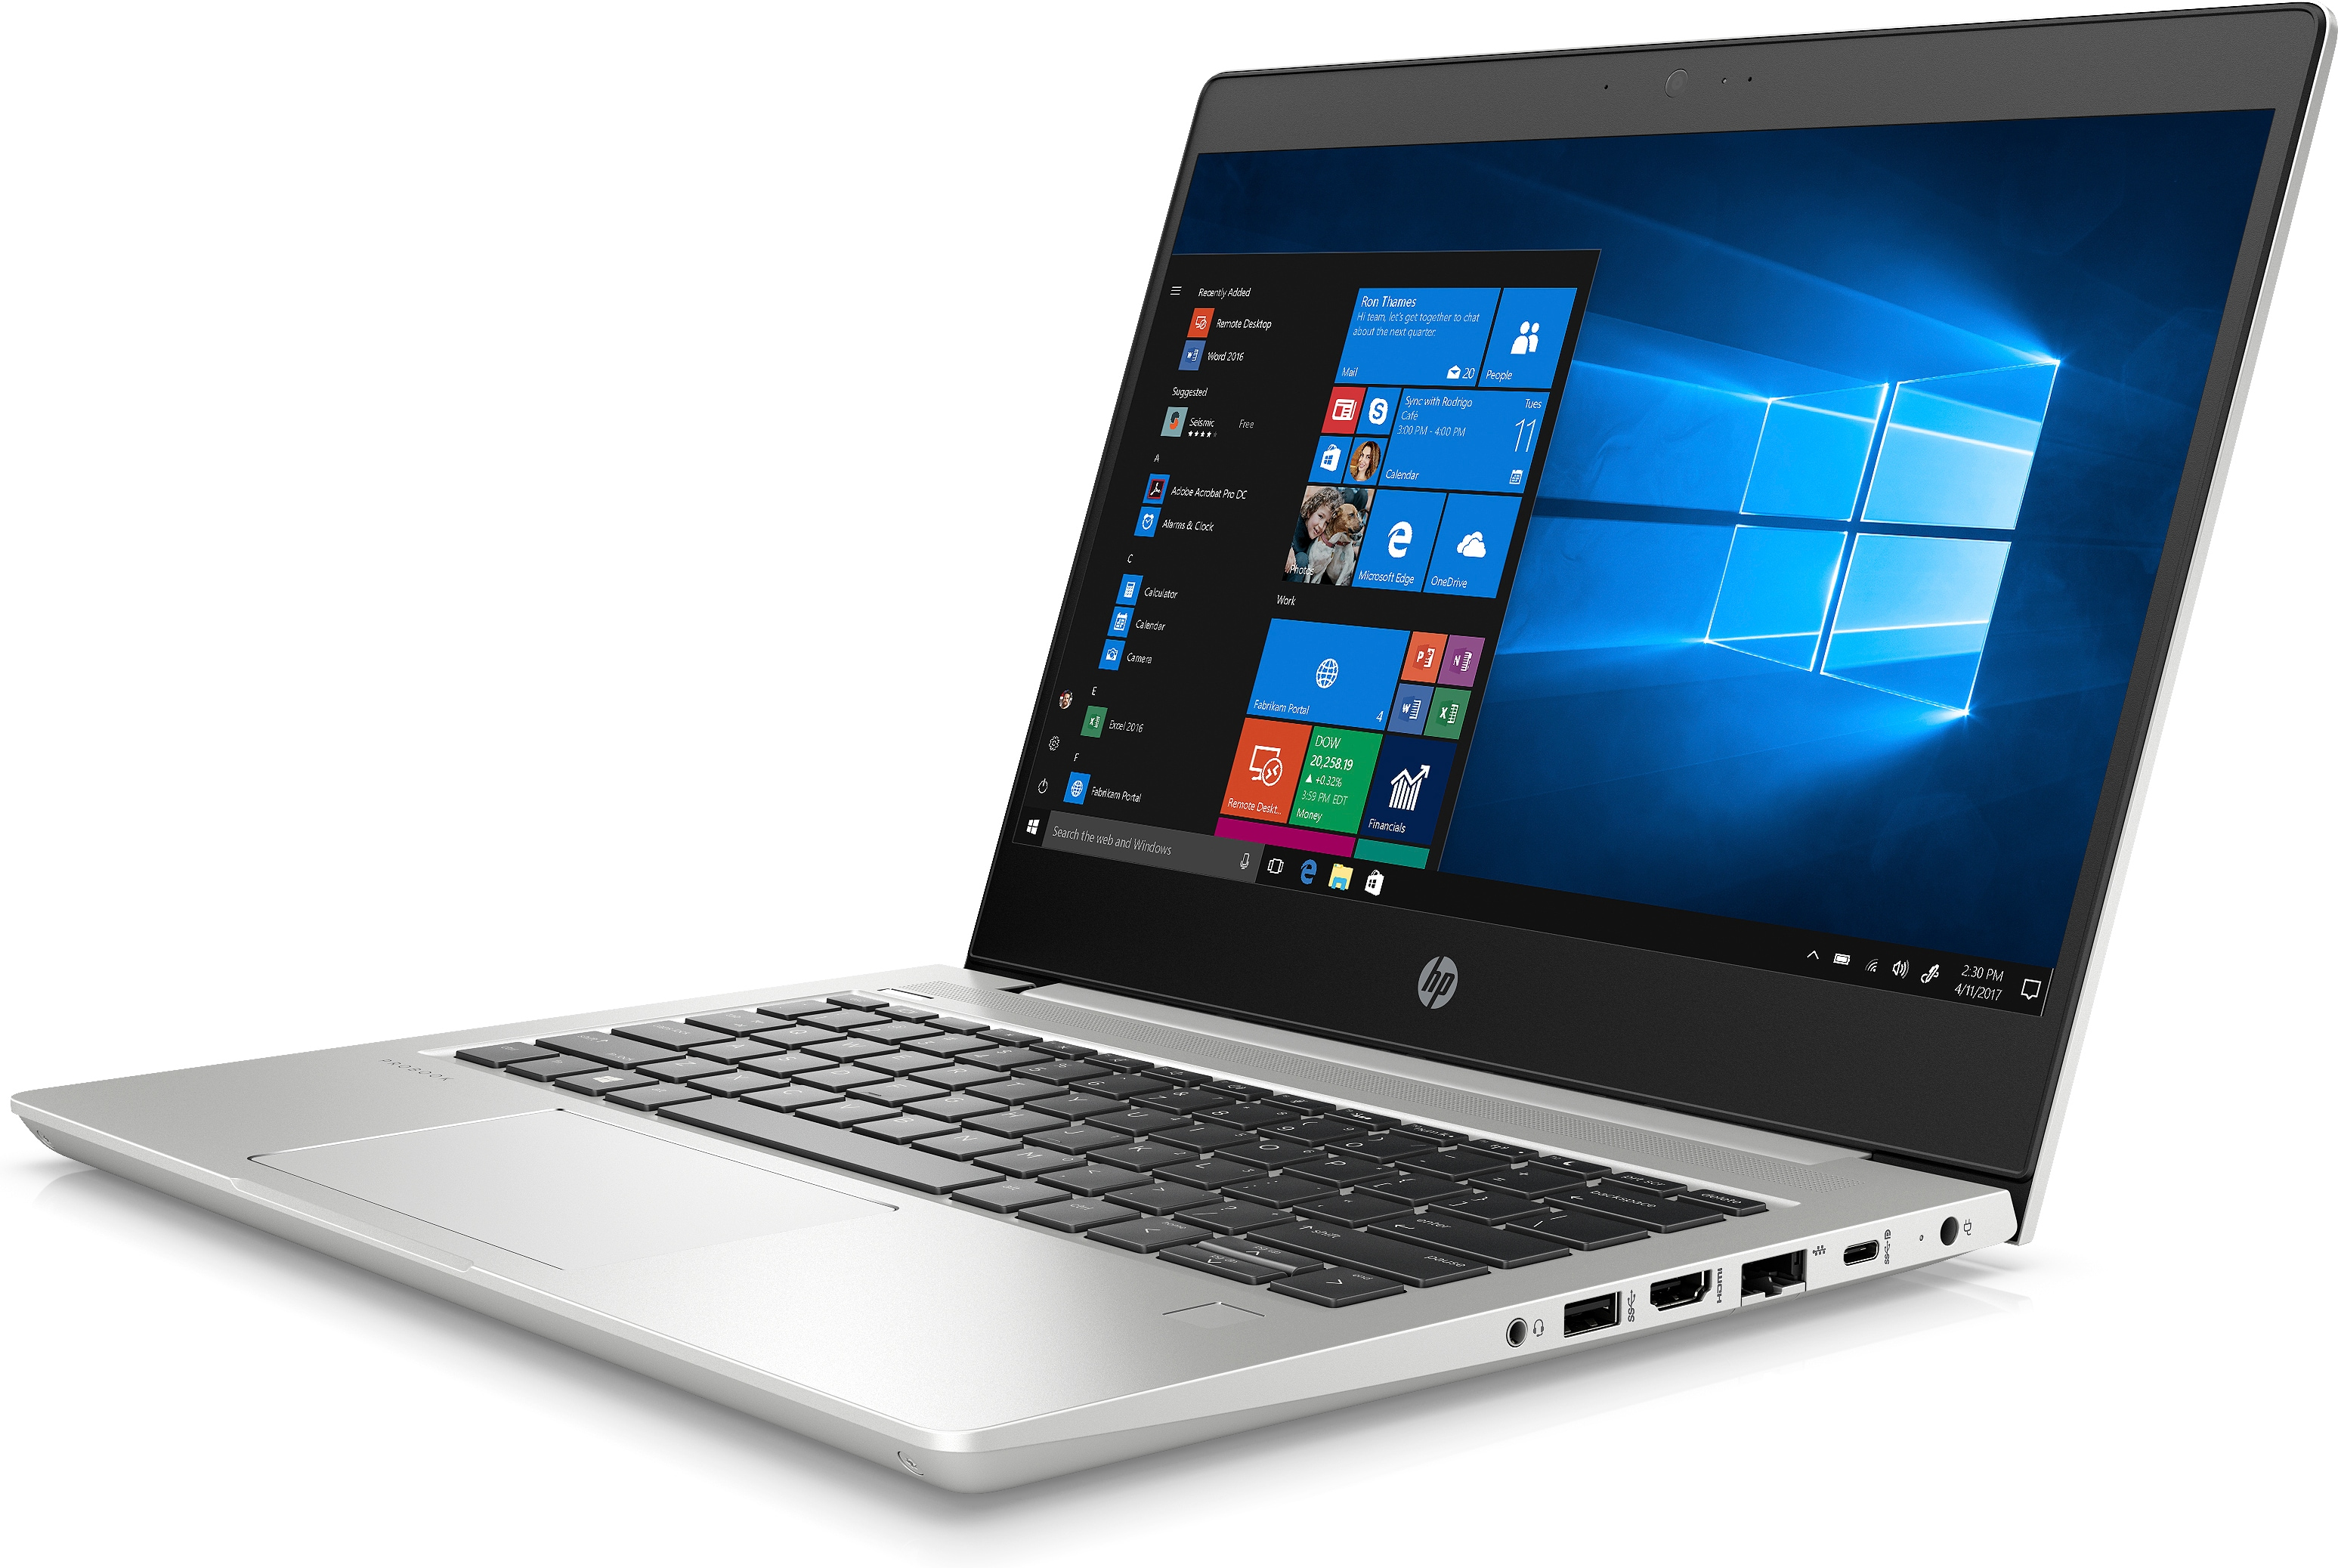 Laptop  HP ProBook 430 G6 13.3 FHD i7-8565U 8GB 256GB SSD Win10Pro 3Y